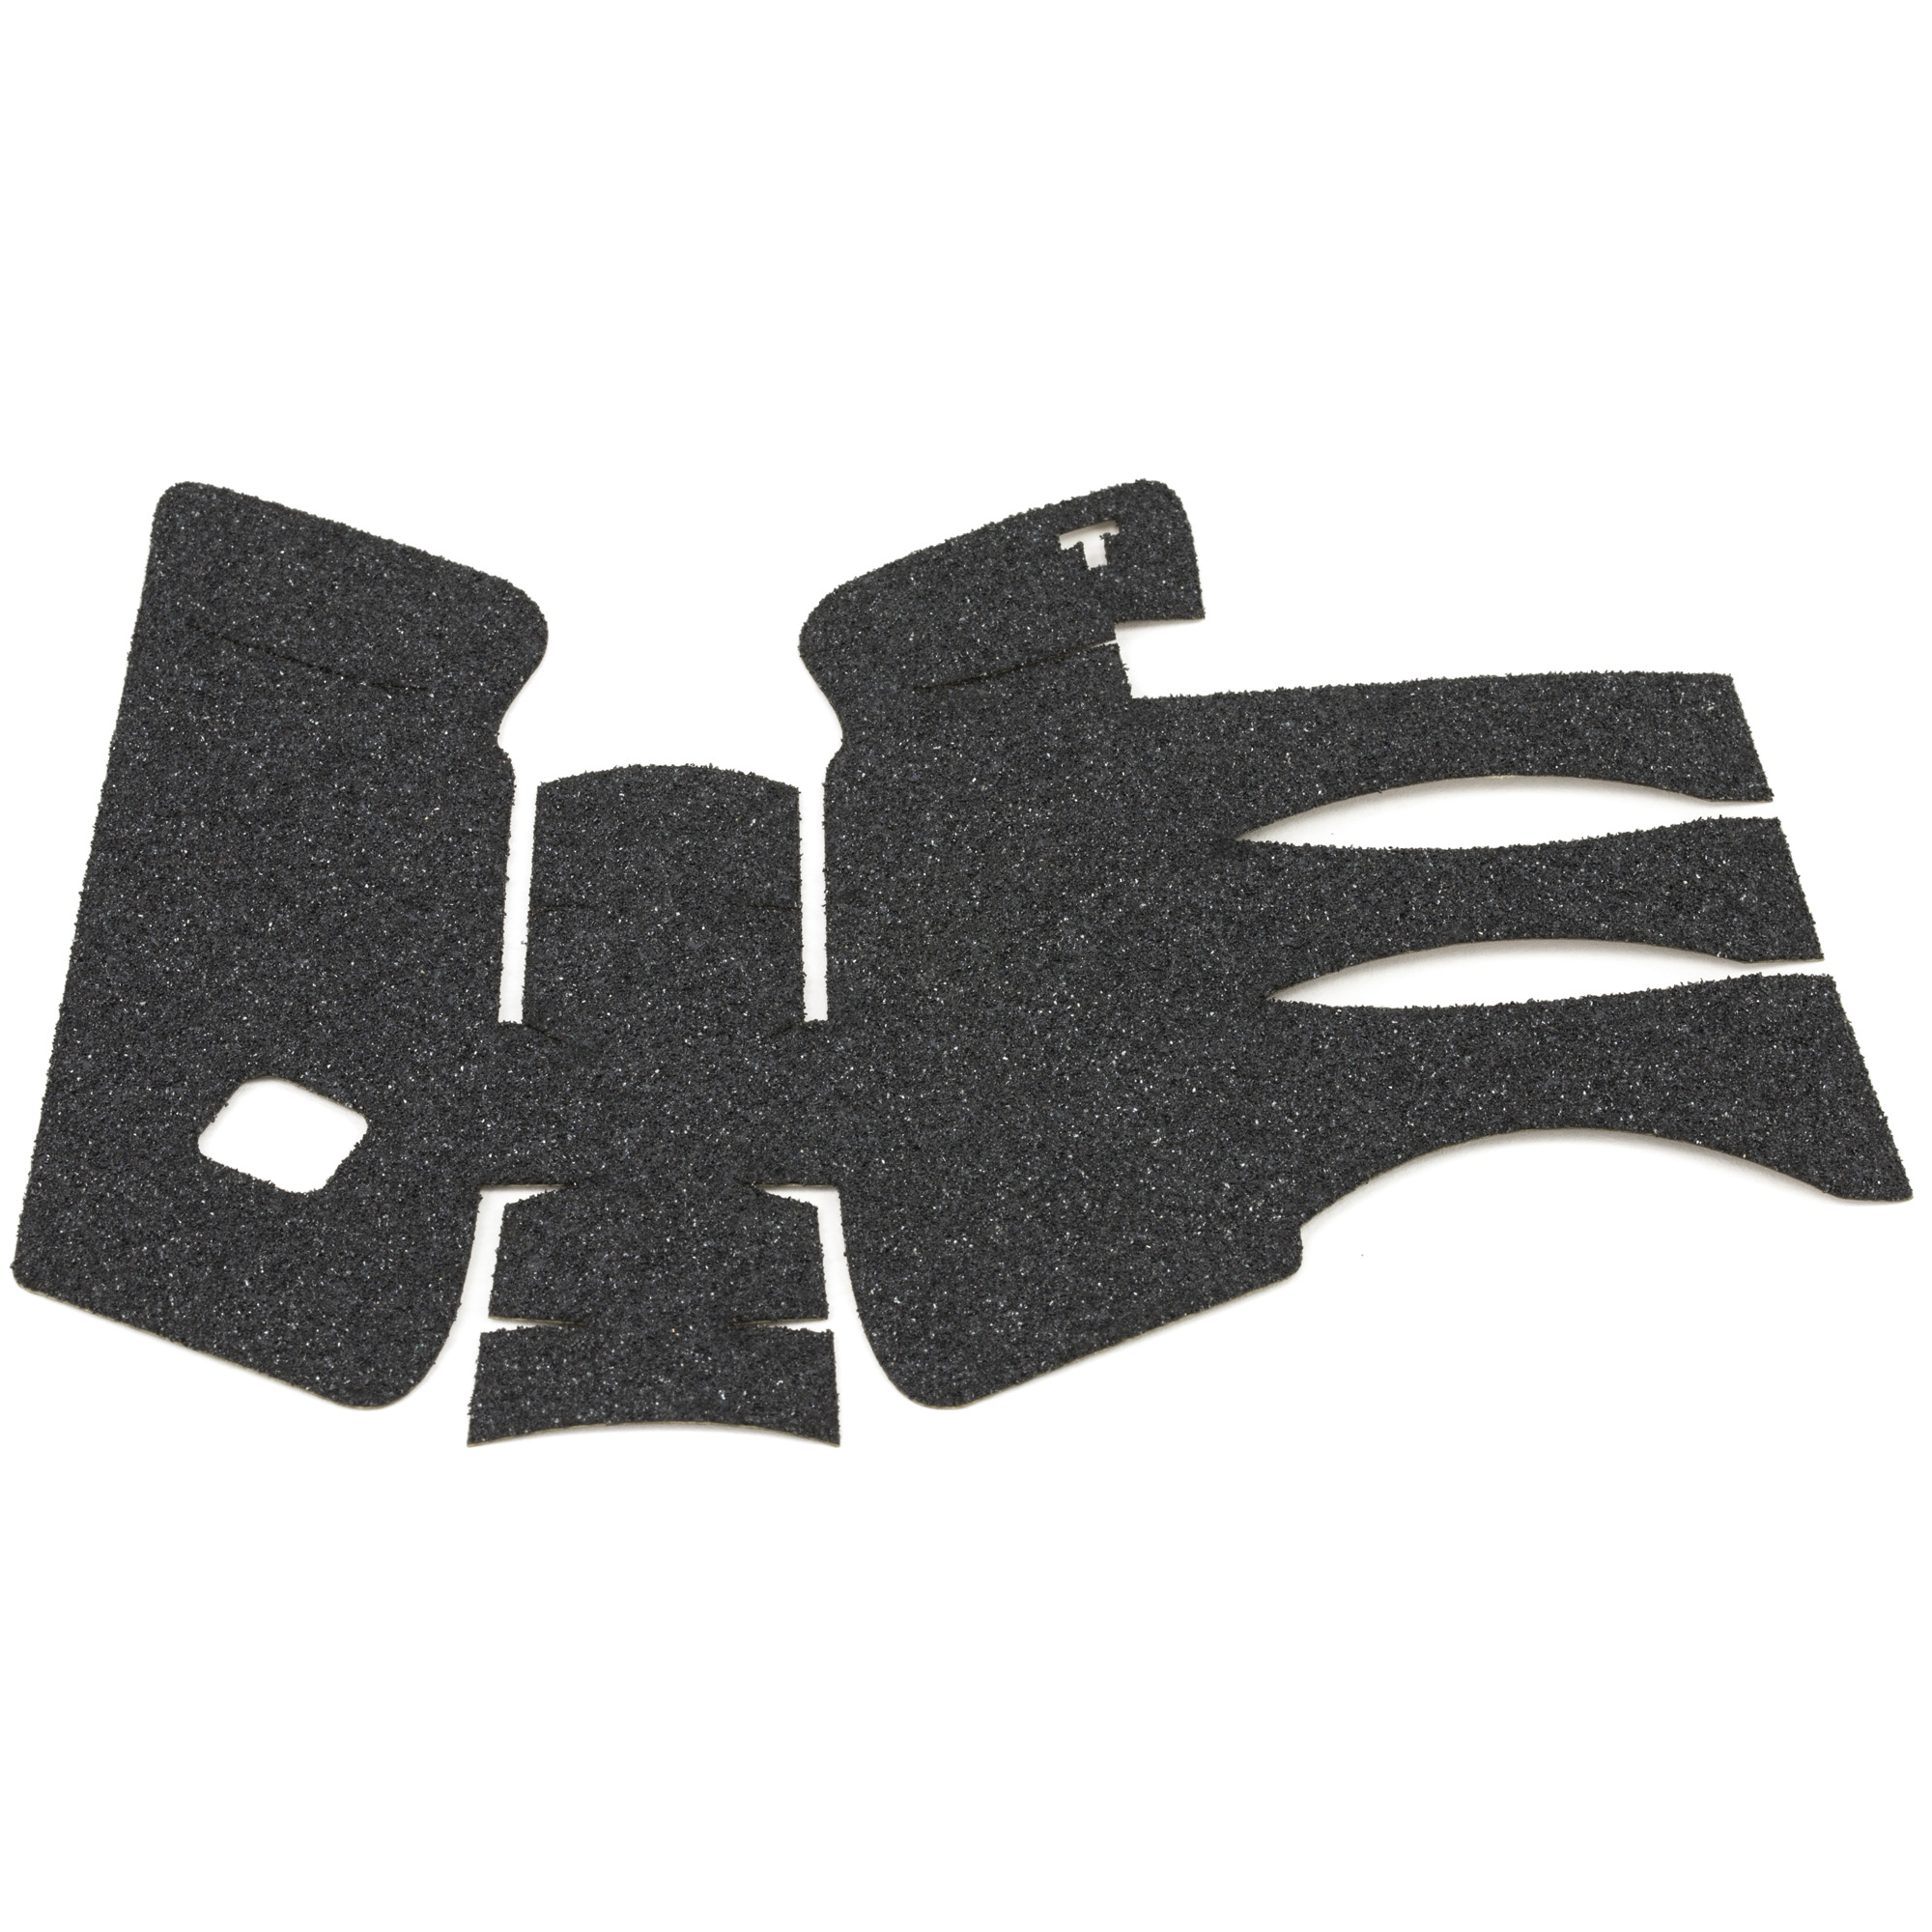 """TALON Grips for Gen 3 Glock 20SF"""" 21SF. This rear wrap grip is in the granulate texture. This grip provides full coverage on the side panels including above the thumb rest"""" ample coverage on the backstrap"""" and three finger wraps for the finger groves under the trigger guard. This grip has a logo cutout for the Glock emblem on the left side of the handle. This grip sticks extremely well even with the Rough Textured Frame (RTF)."""